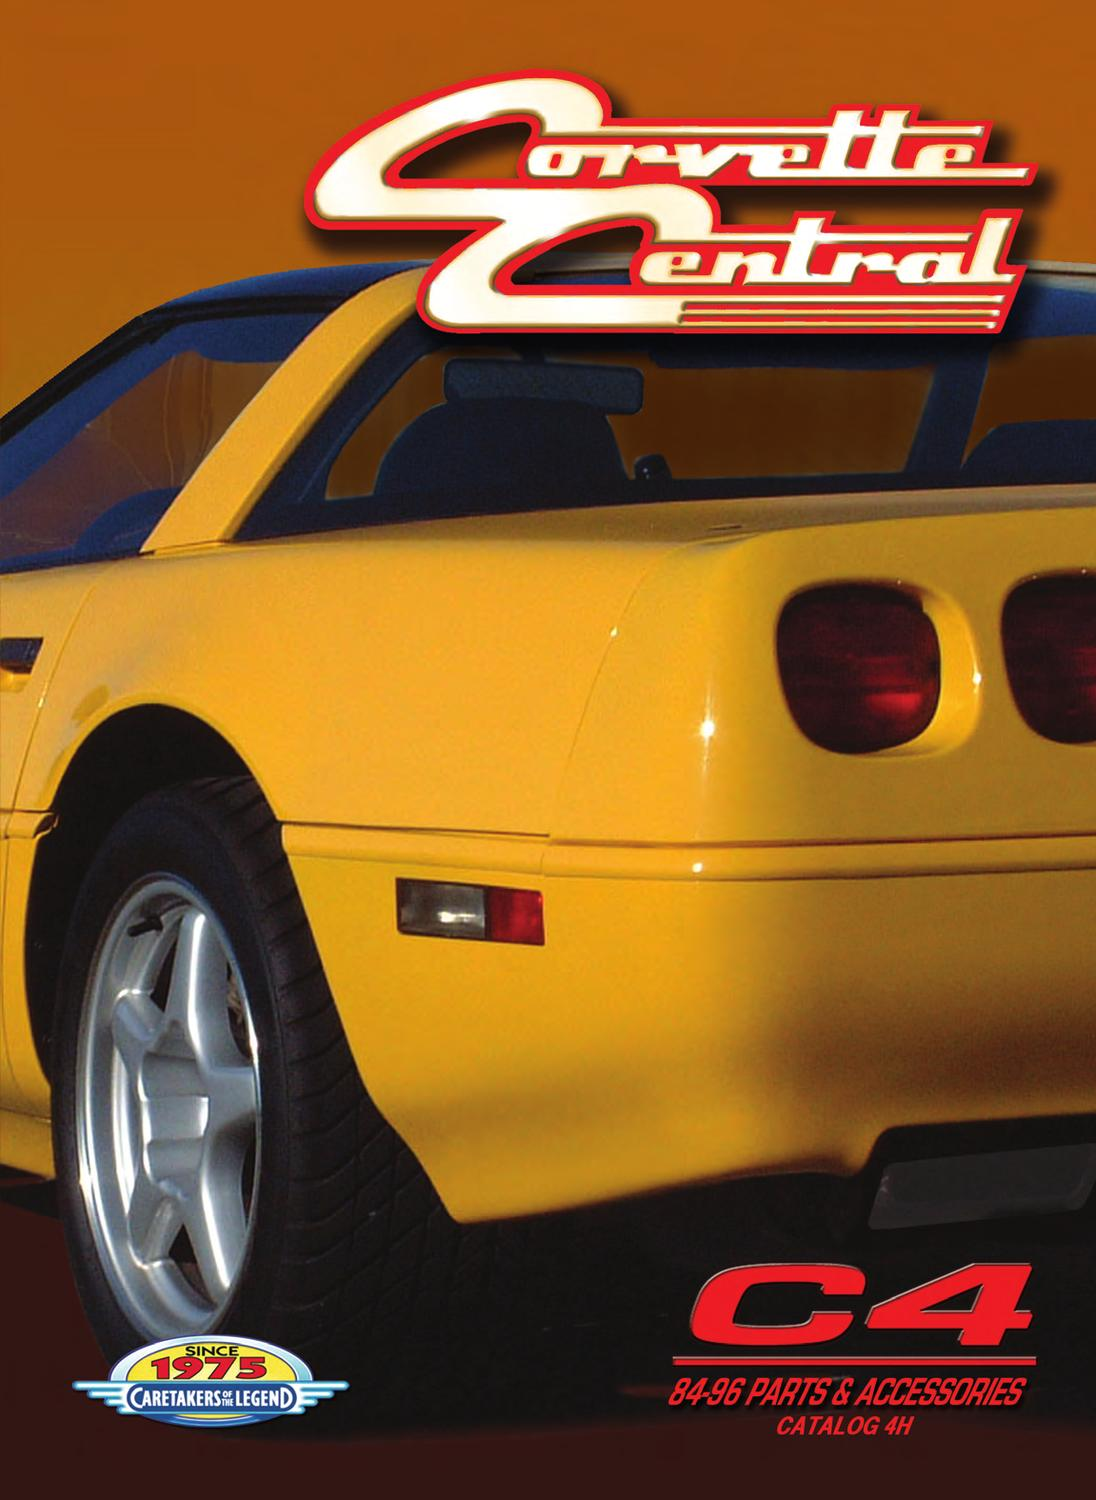 Corvette Central C4 84 96 Parts Catalog By 12 Volt Car Battery Diagram With Cutaway And Labeled Components Issuu